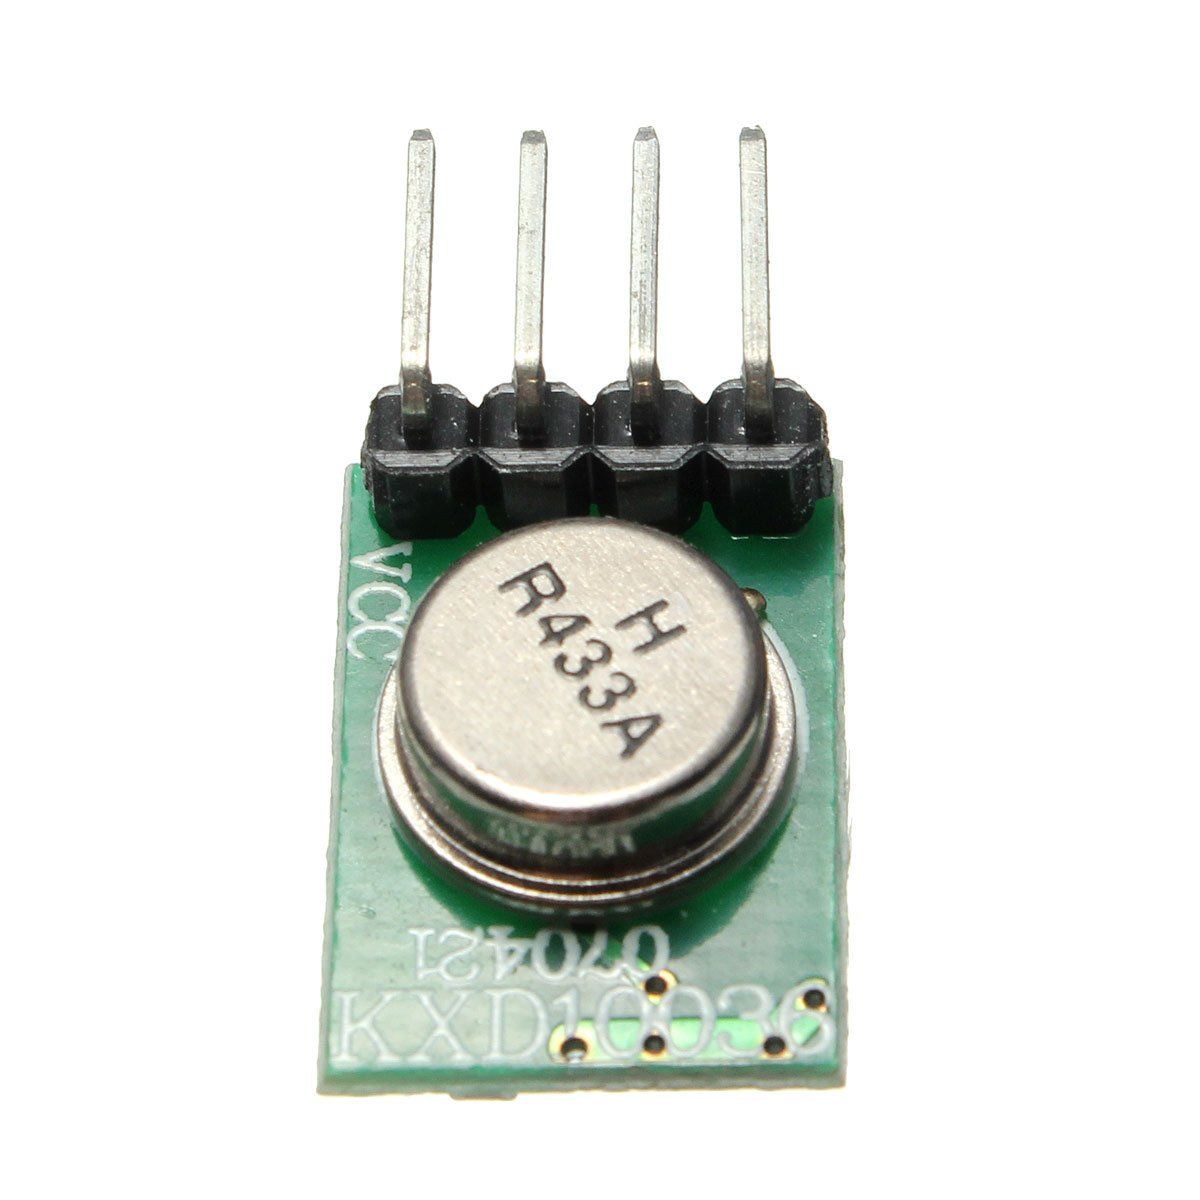 Superheterodyne 3400 Radio Receiver Module + 433RF Wireless Transmitter Module